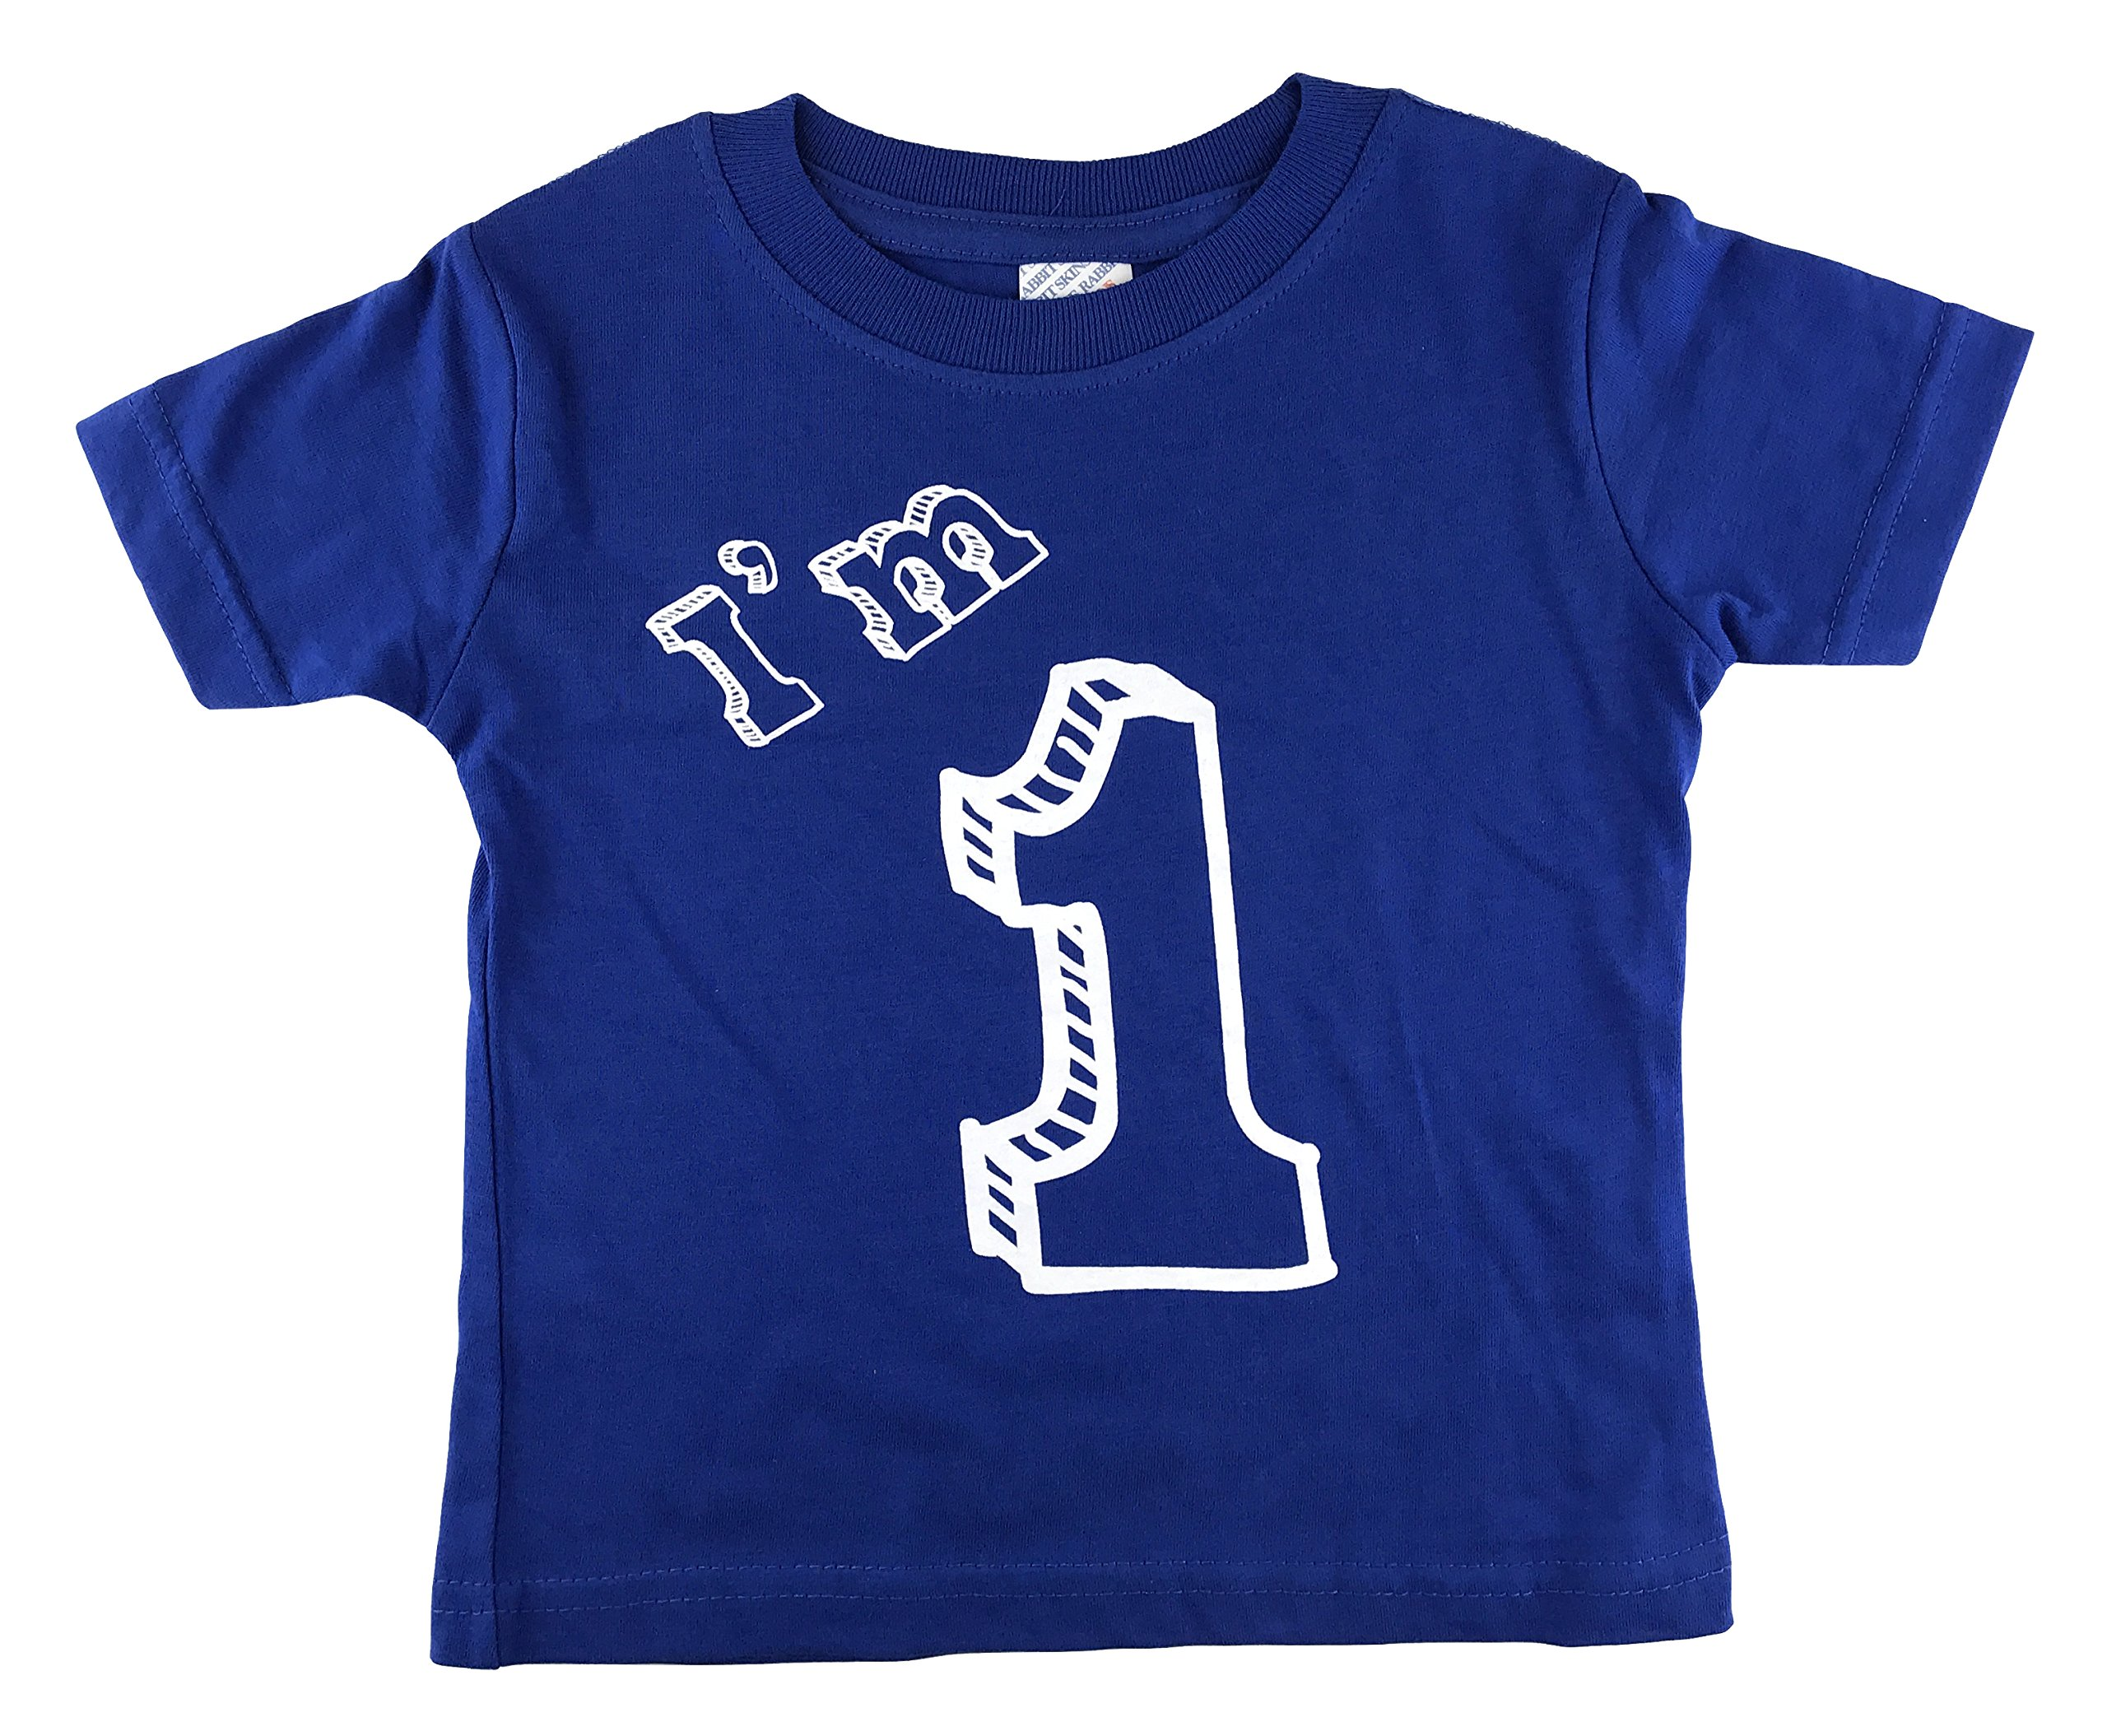 I'm 1 T-Shirt - One Year Old Birthday Party (12 Month, Royal Blue)